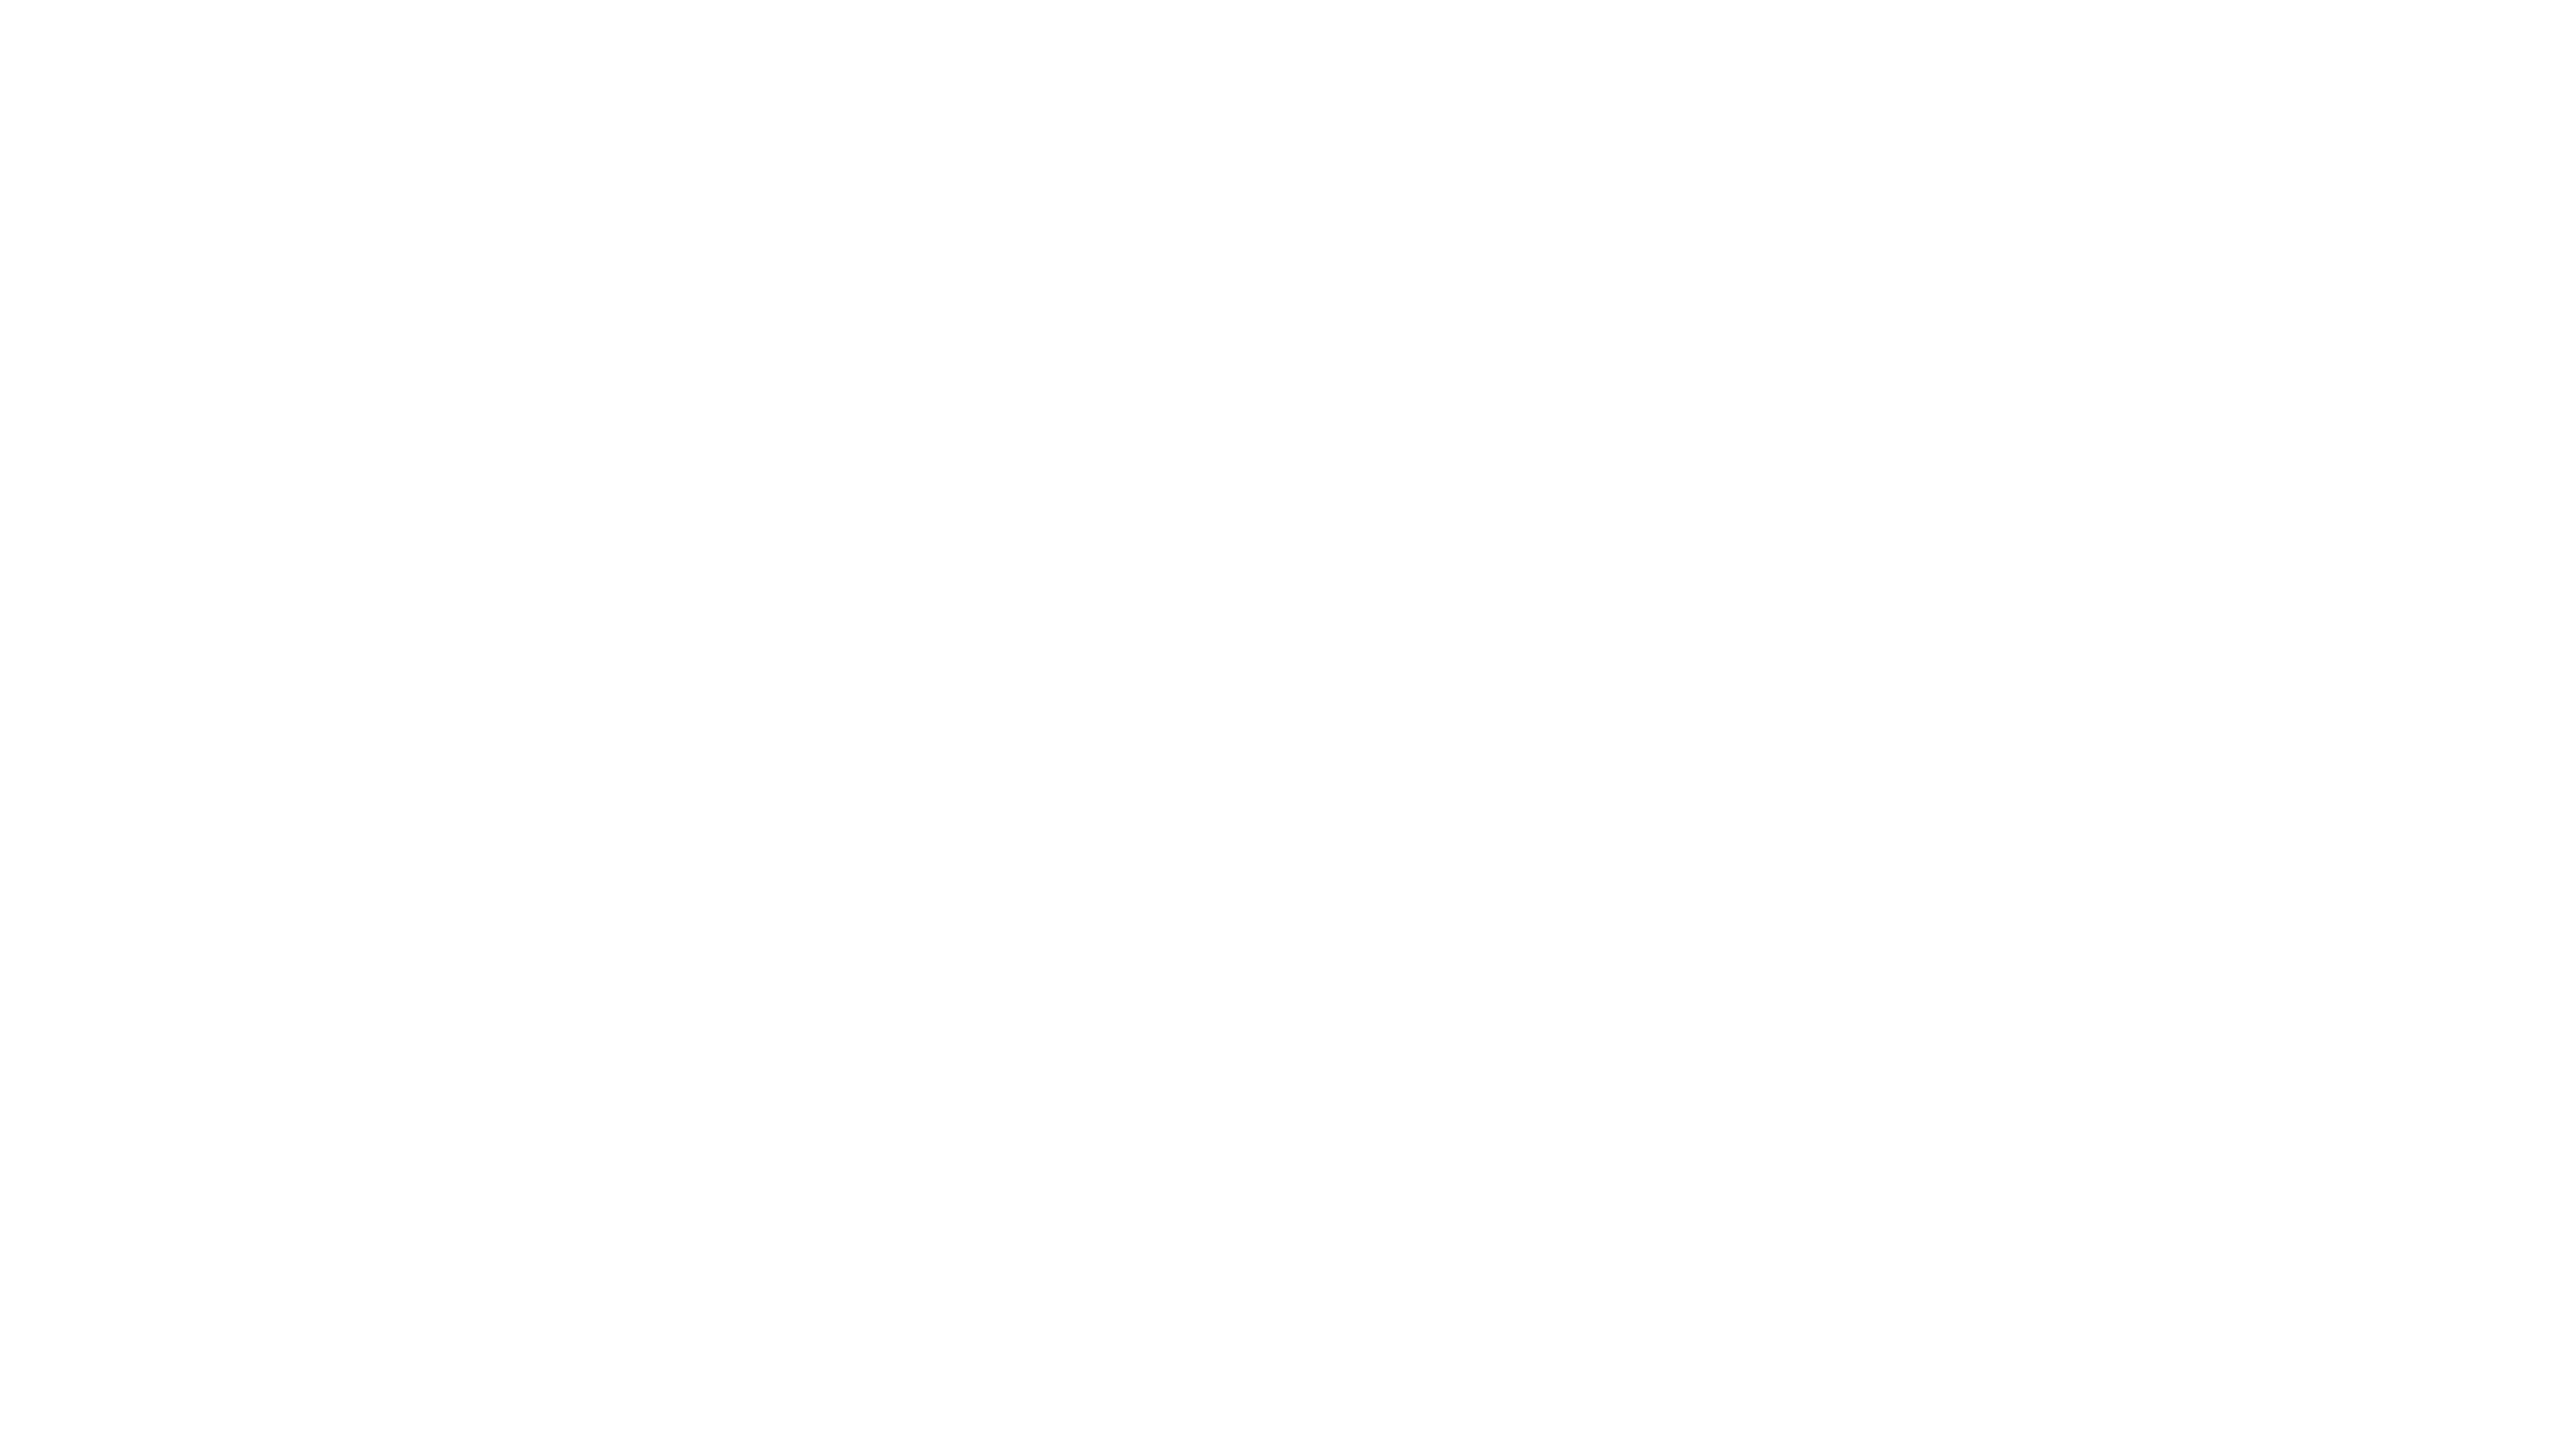 SB-creativity-title